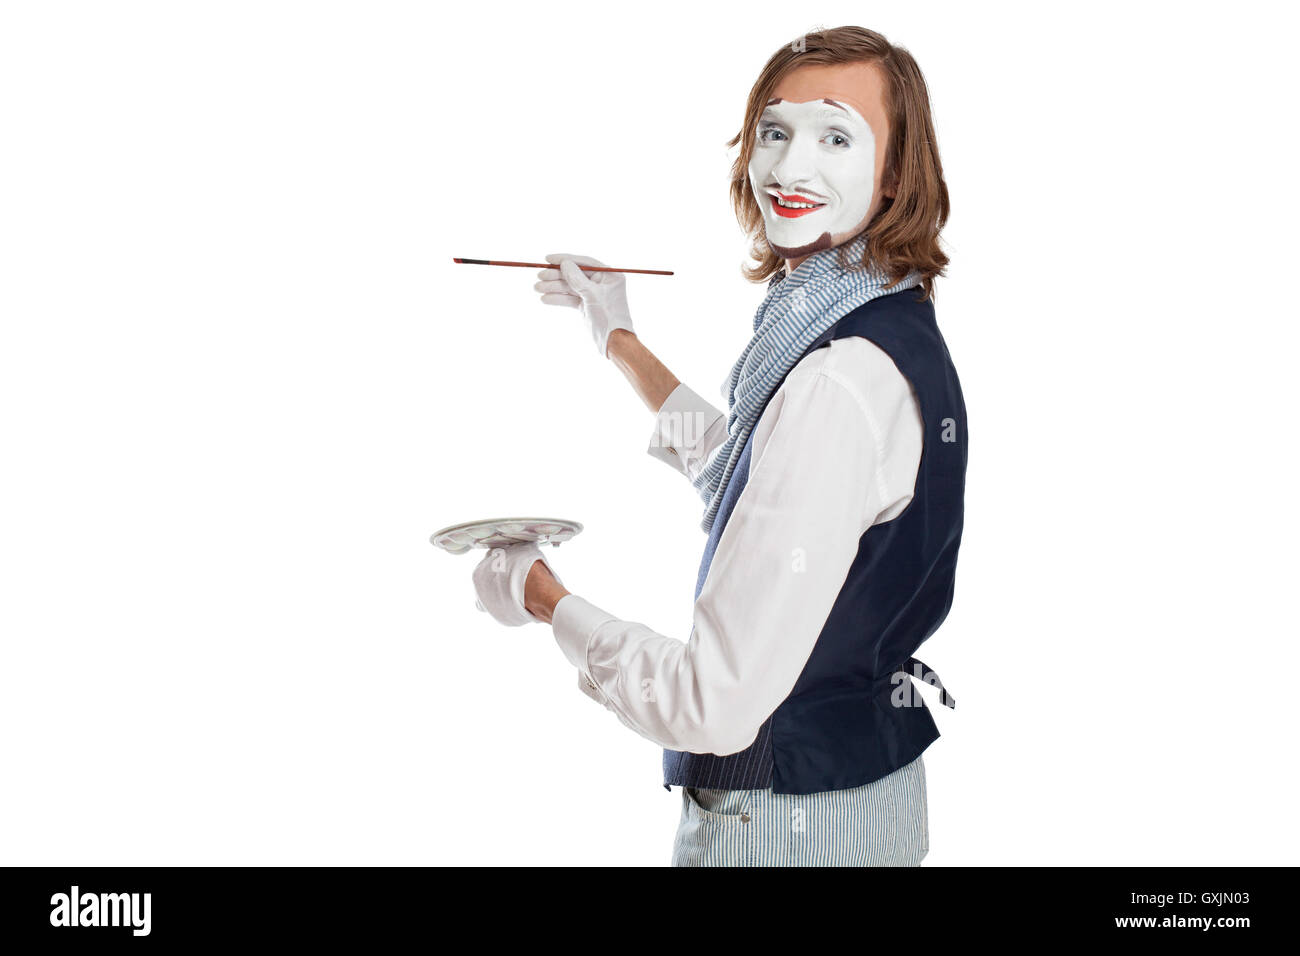 mime actor play the painter - Stock Image